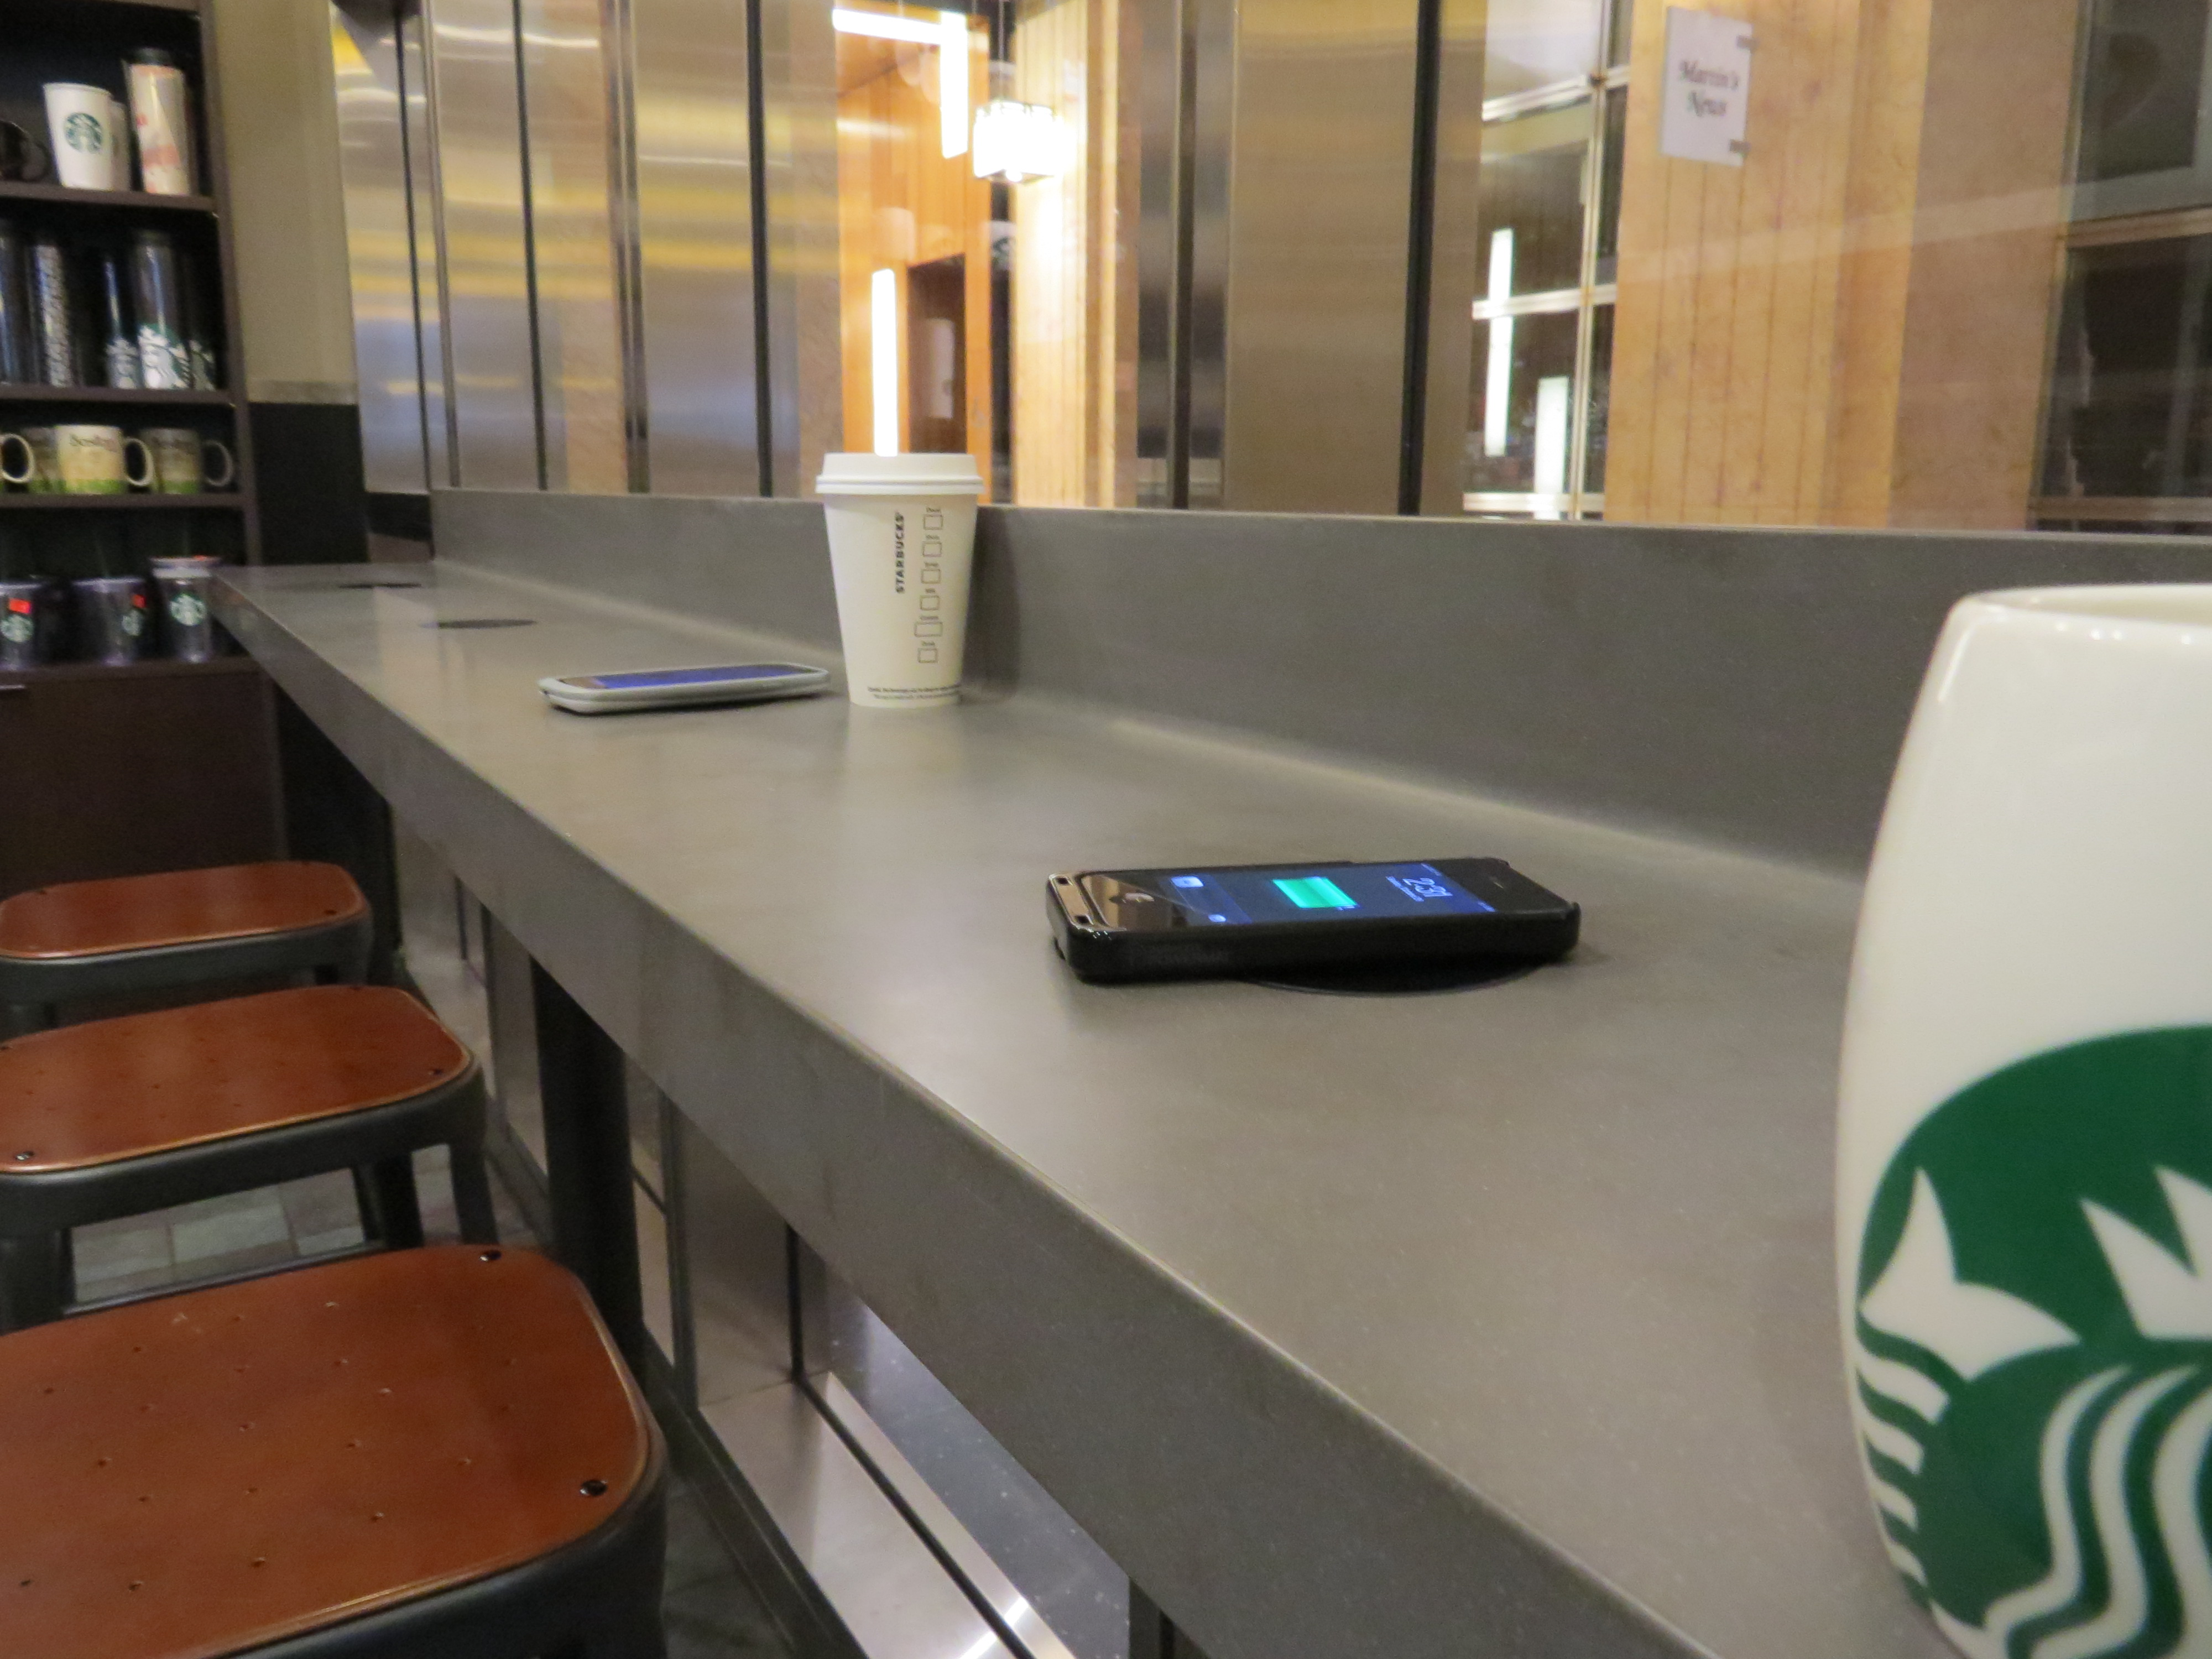 A phone being charged wirelessly at Starbucks